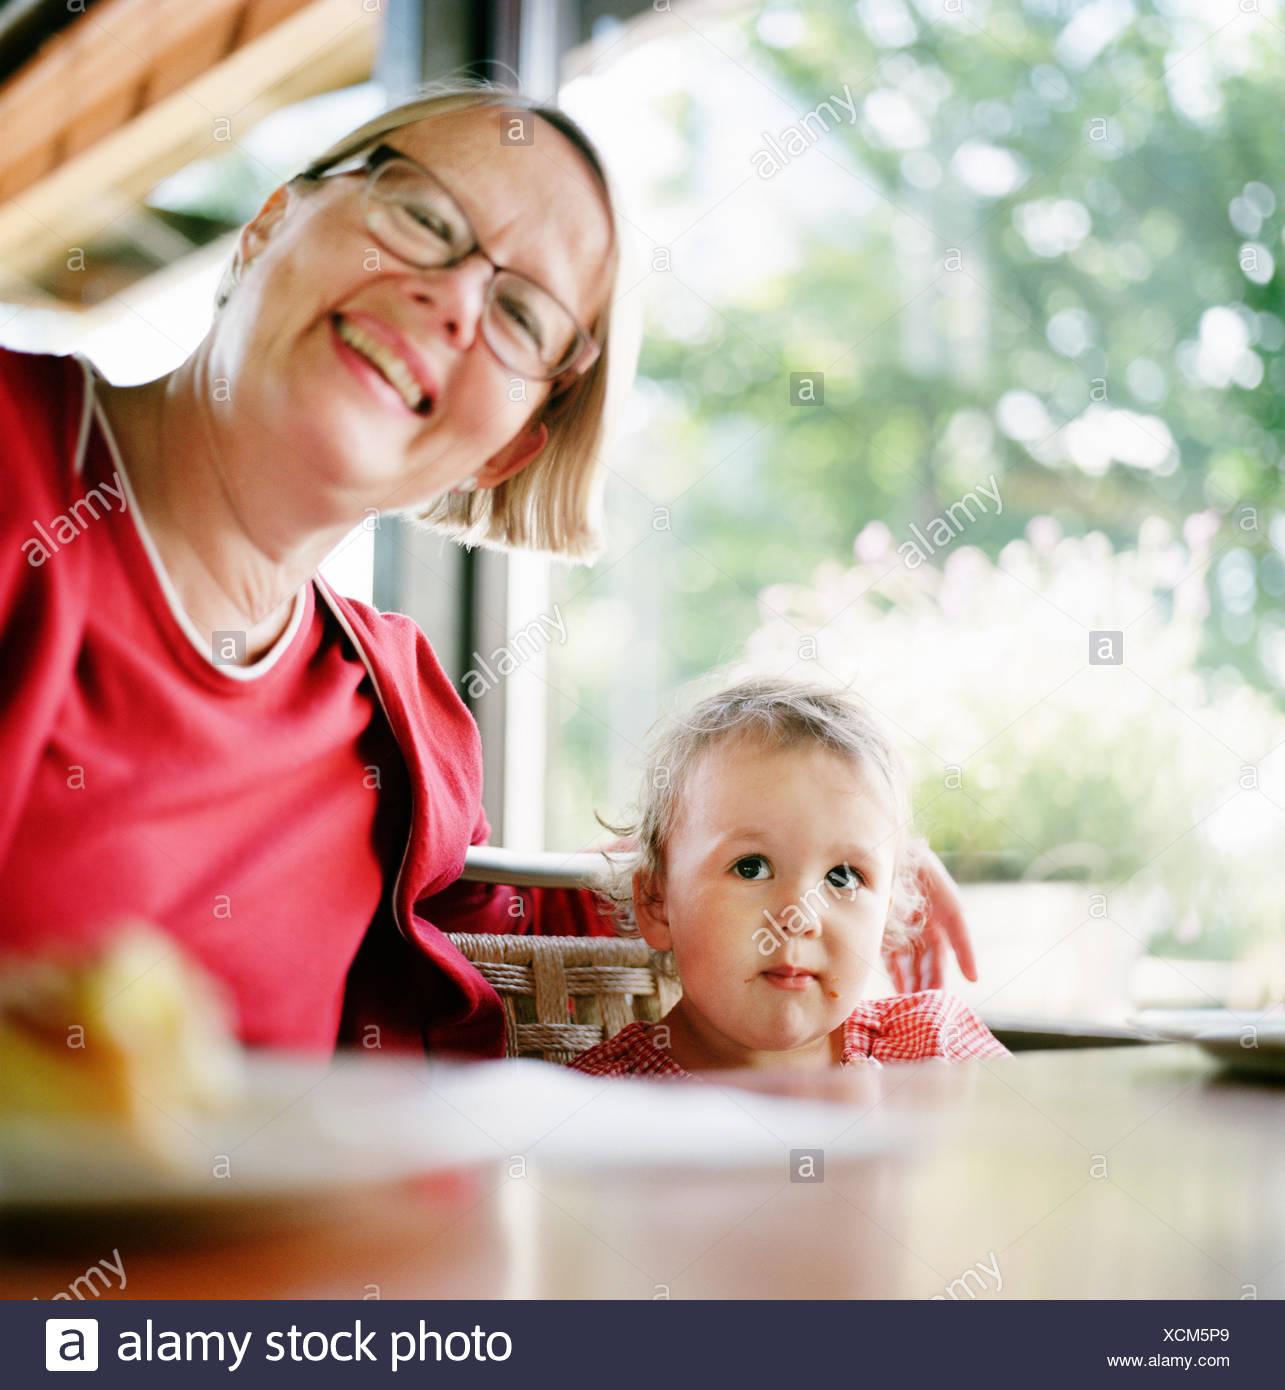 Finland, Helsinki, Uusimaa, Portrait of grandmother with granddaughter (2-3) - Stock Image